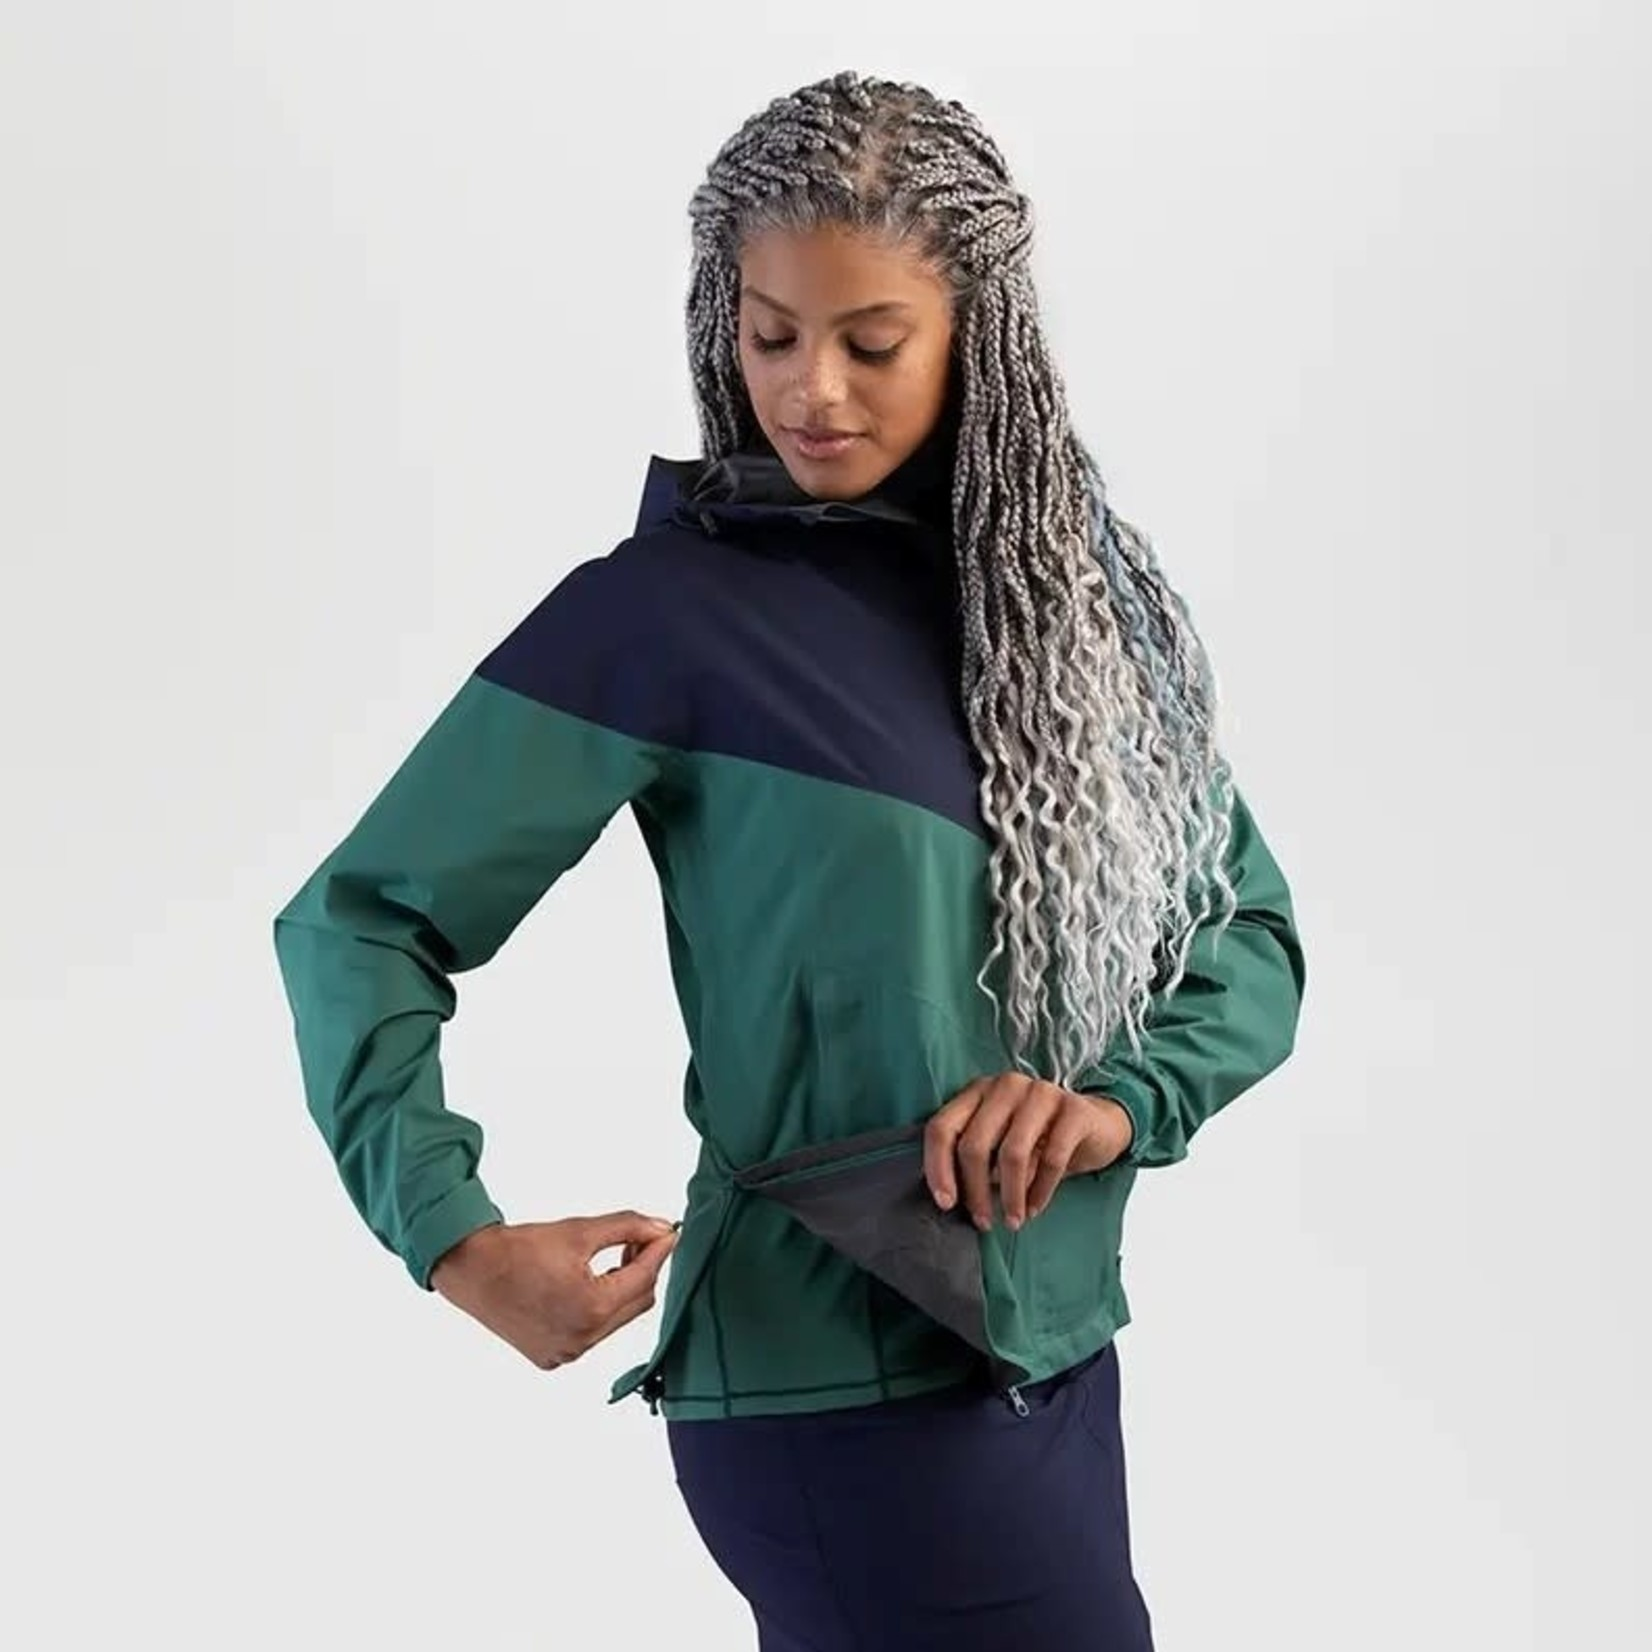 Outdoor Research Manteau Outdoor Research Aspire - Femme